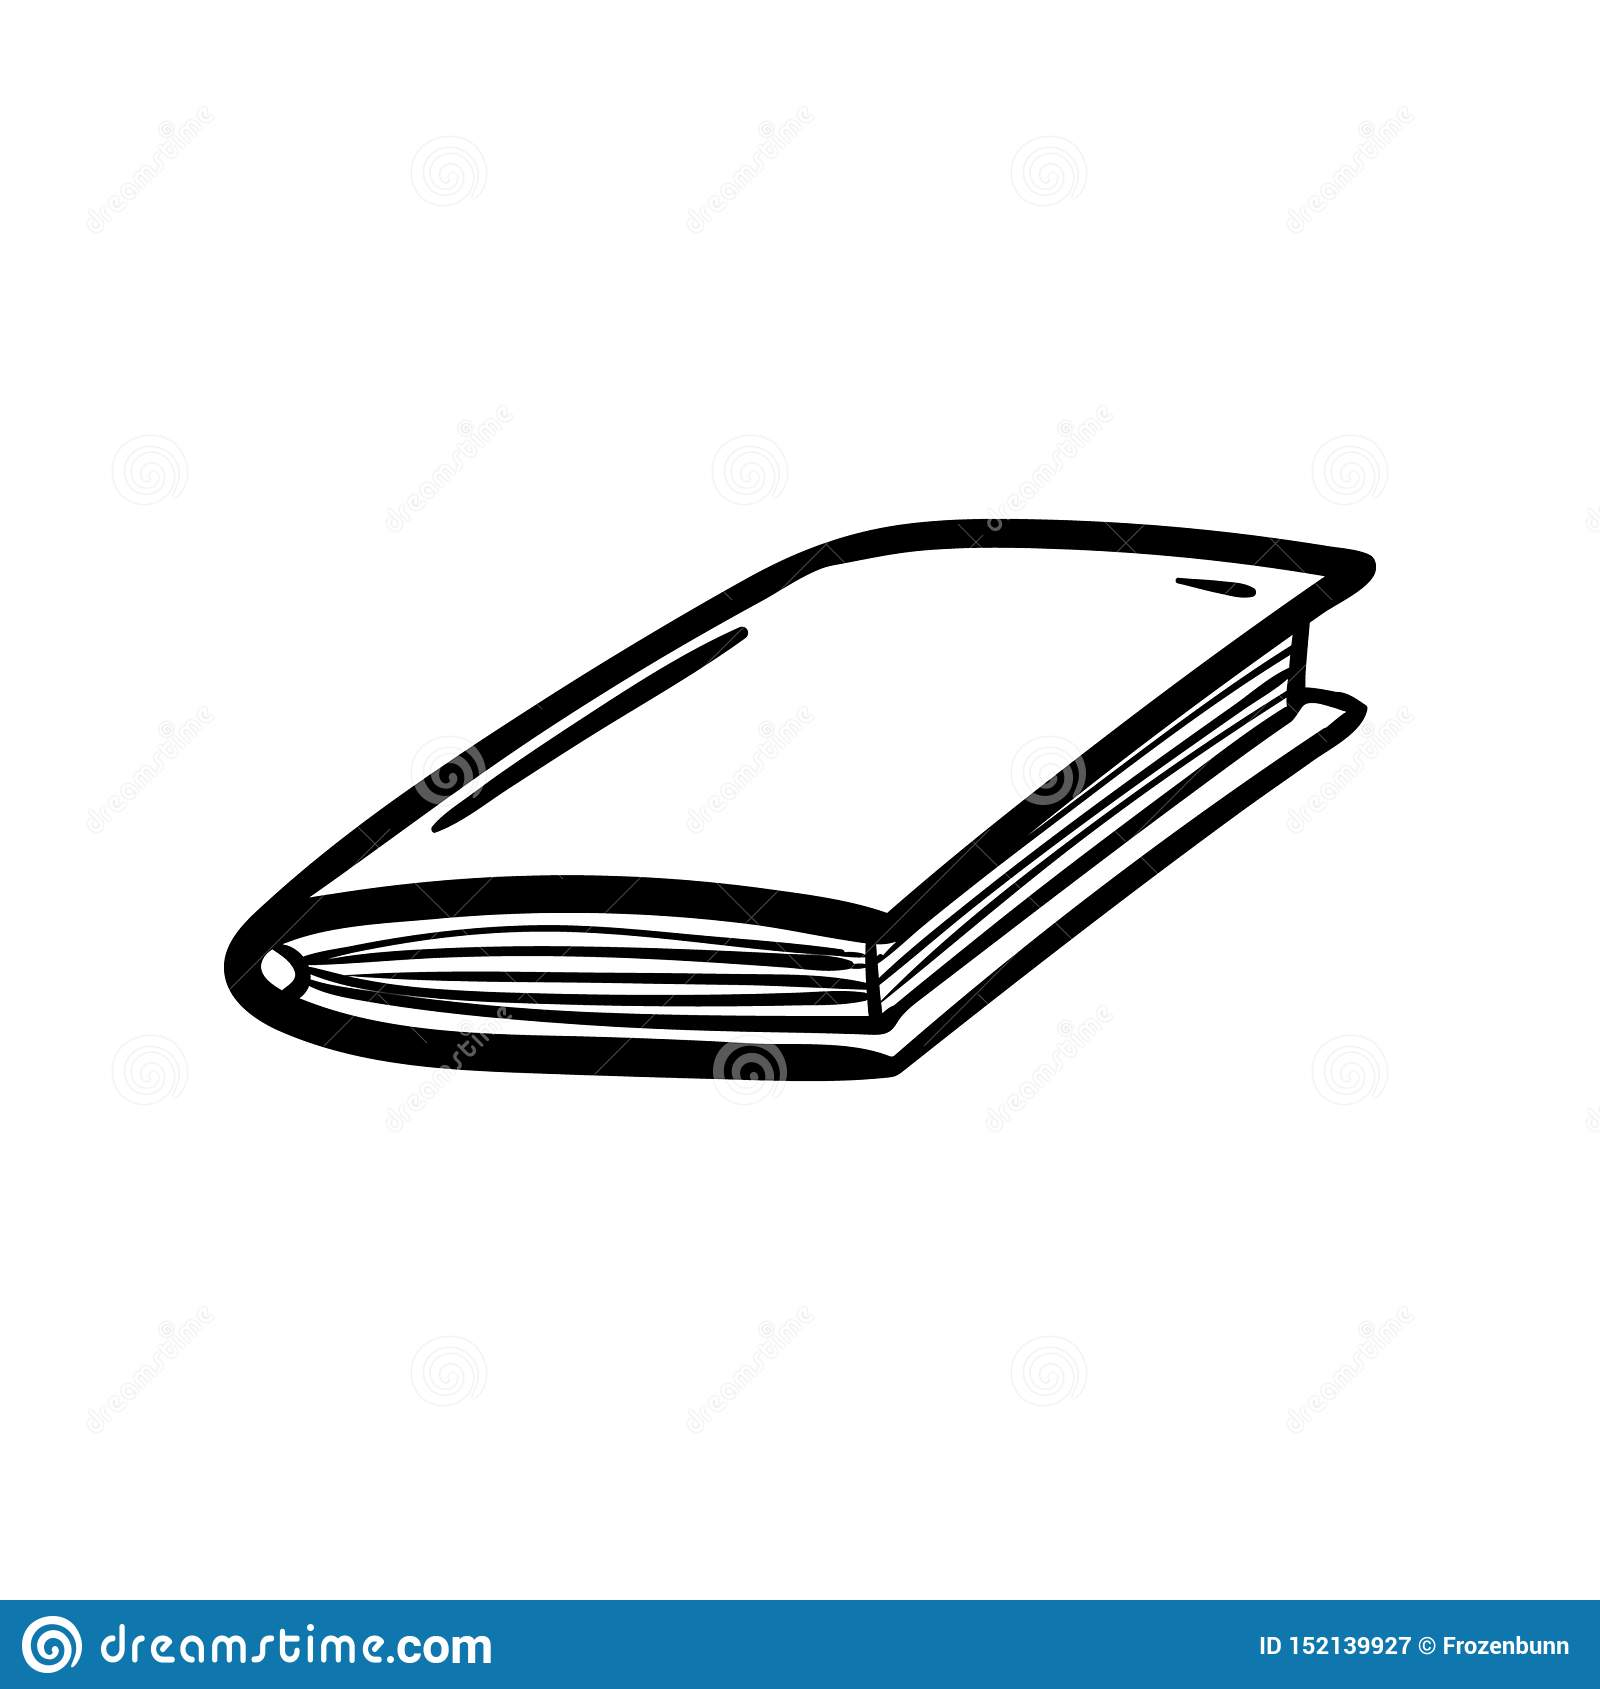 Handdrawn book doodle icon. Hand drawn black sketch. Sign symbol. Decoration element. White background. Isolated. Flat design.